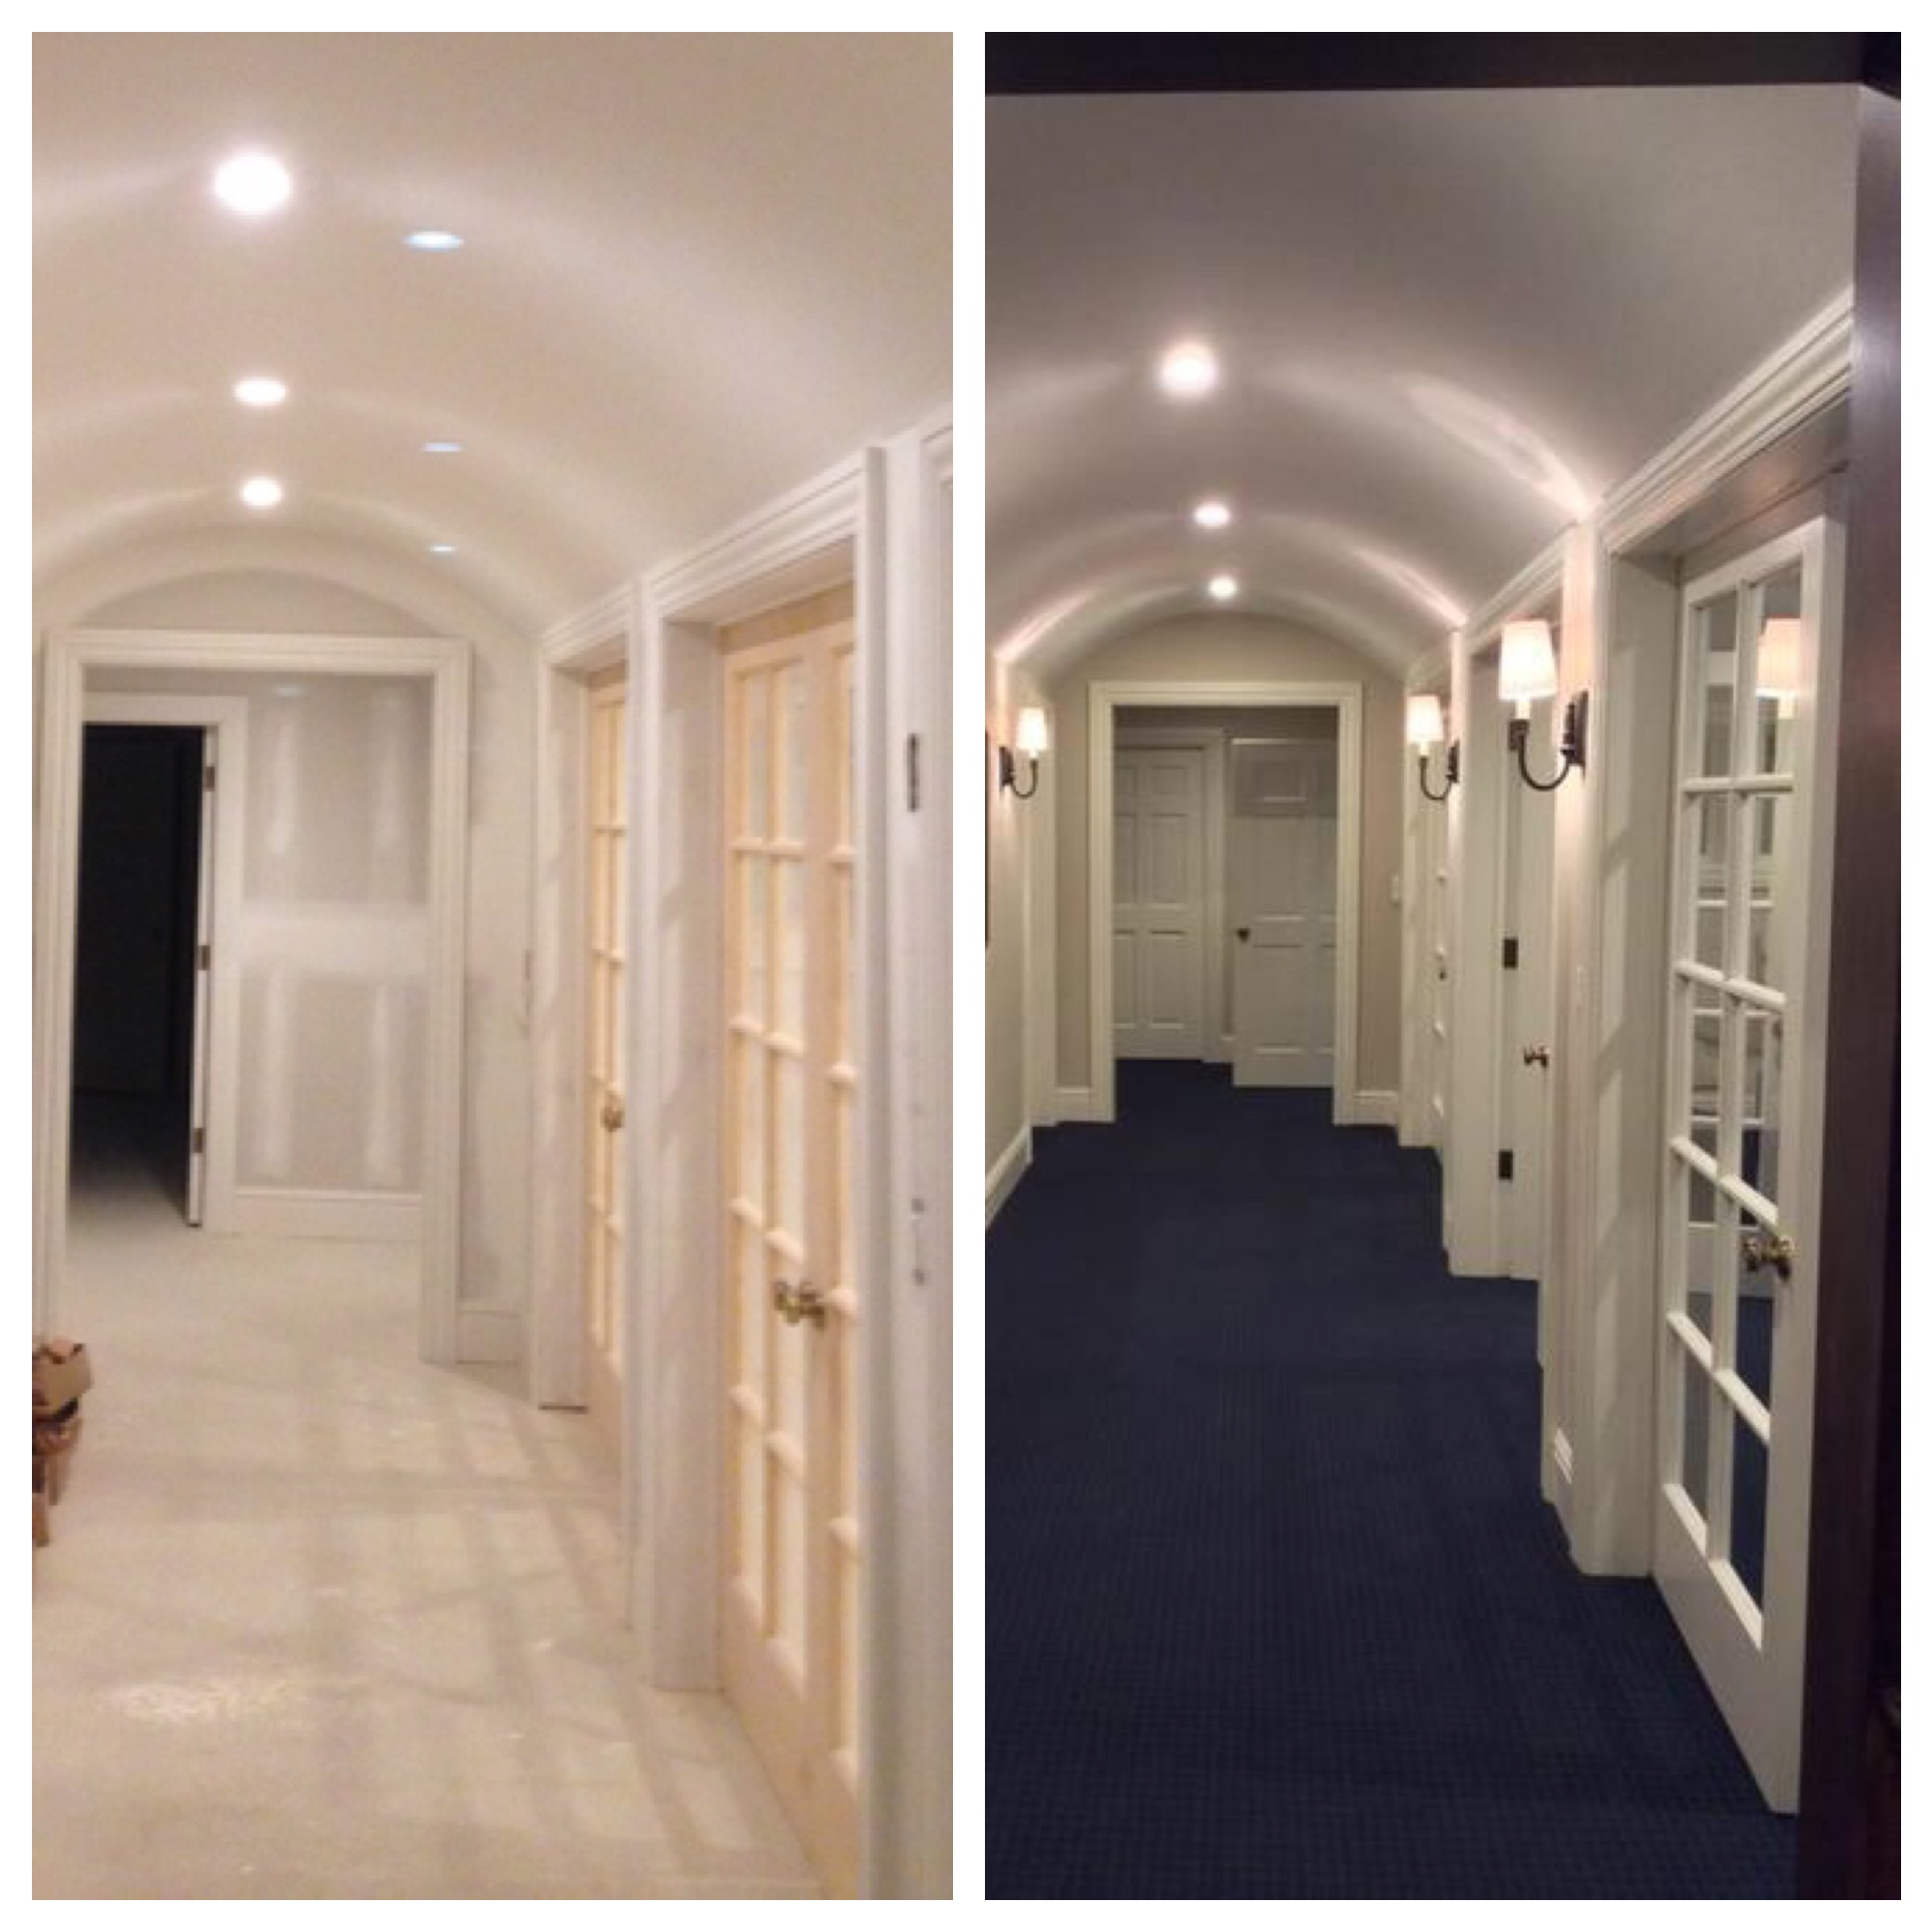 Barrel Ceilings before and after